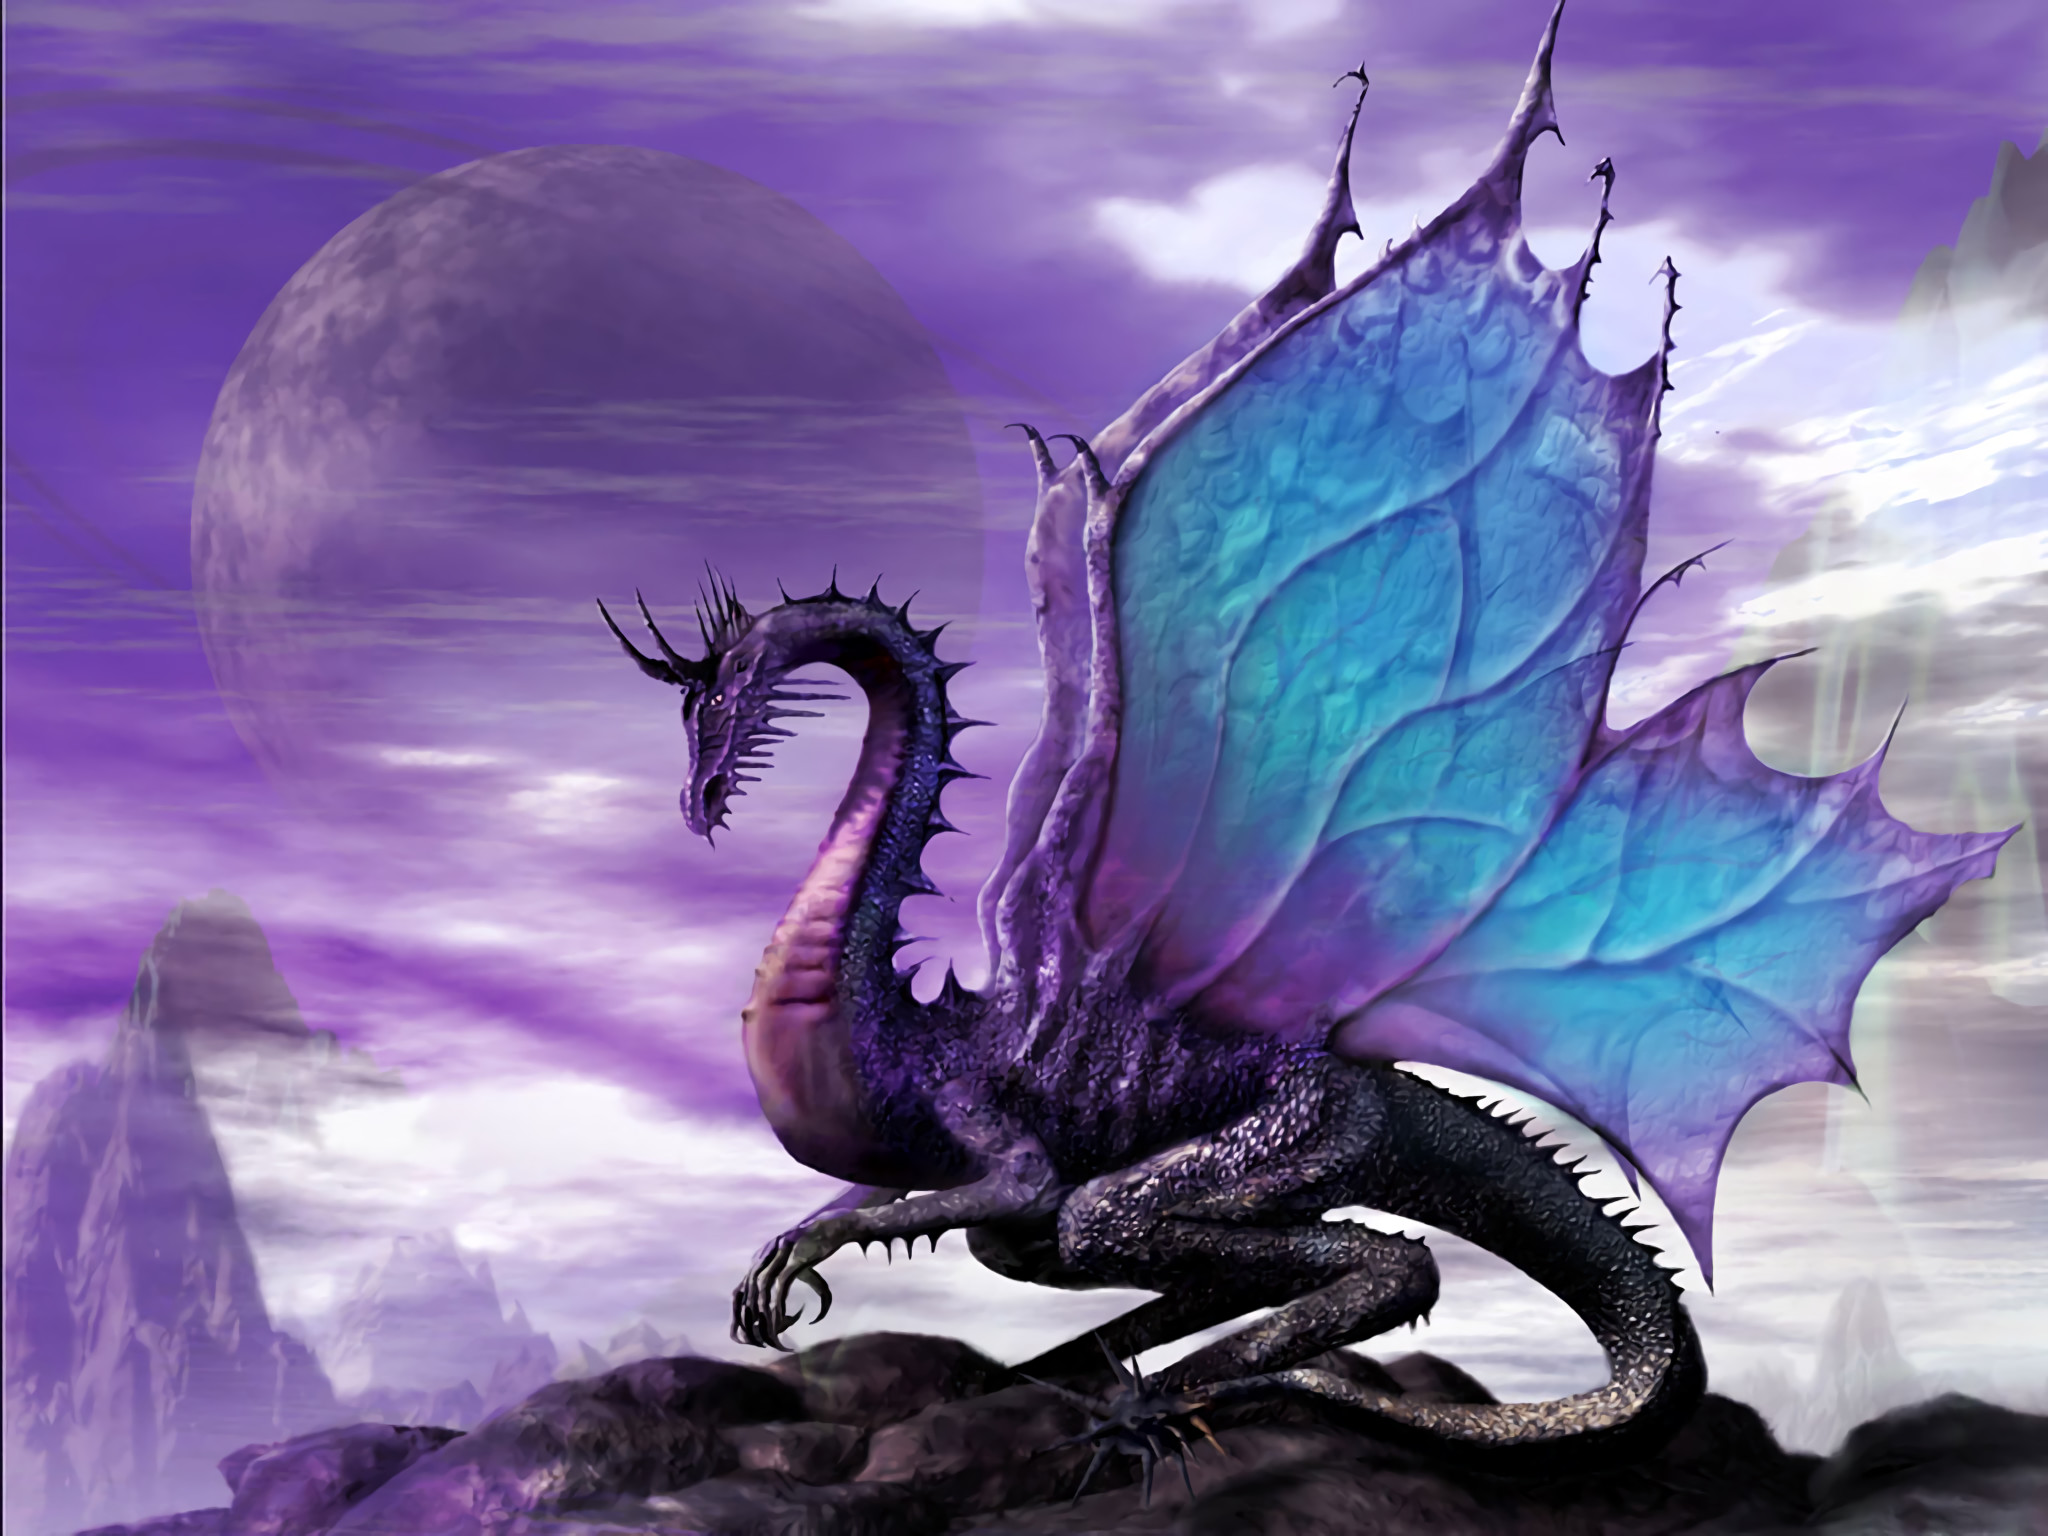 2048x1536 HD Wallpaper | Background Image ID:14065.  Fantasy Dragon